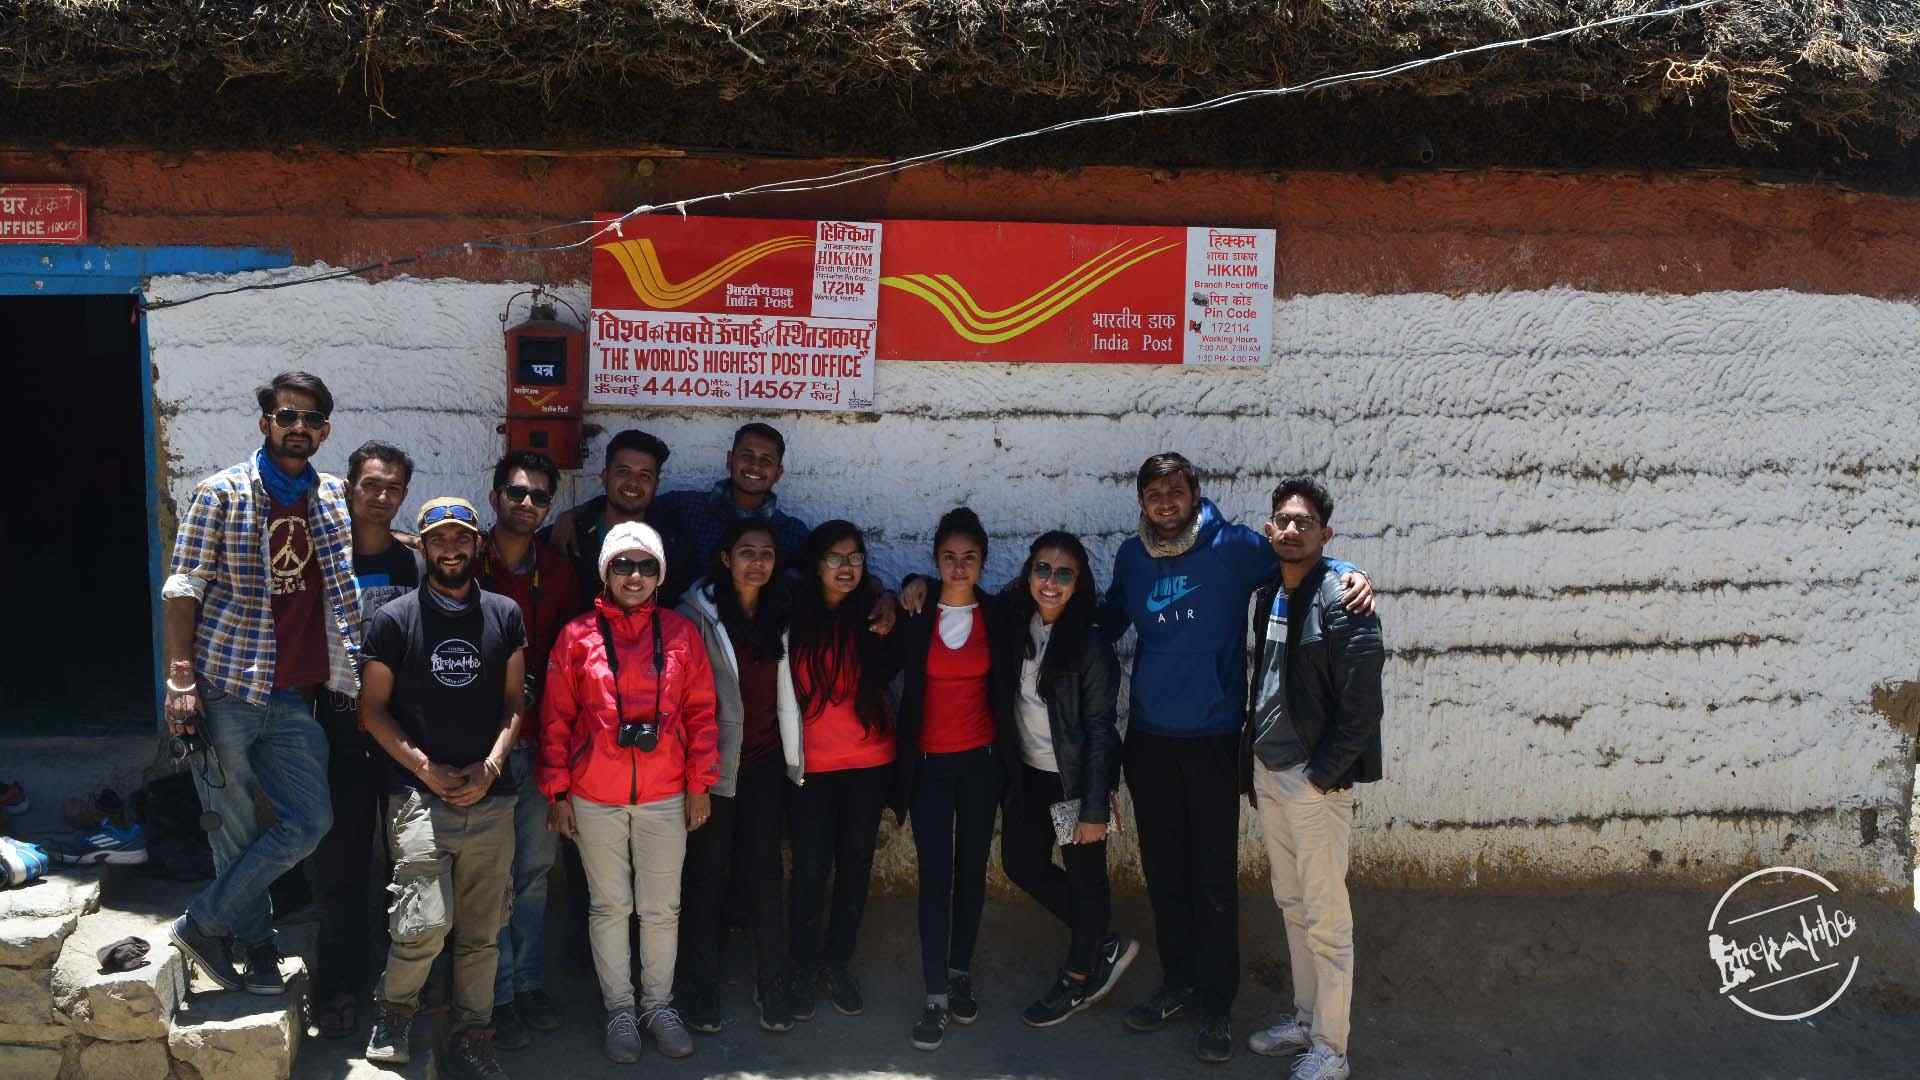 hikkim - worlds highest post office